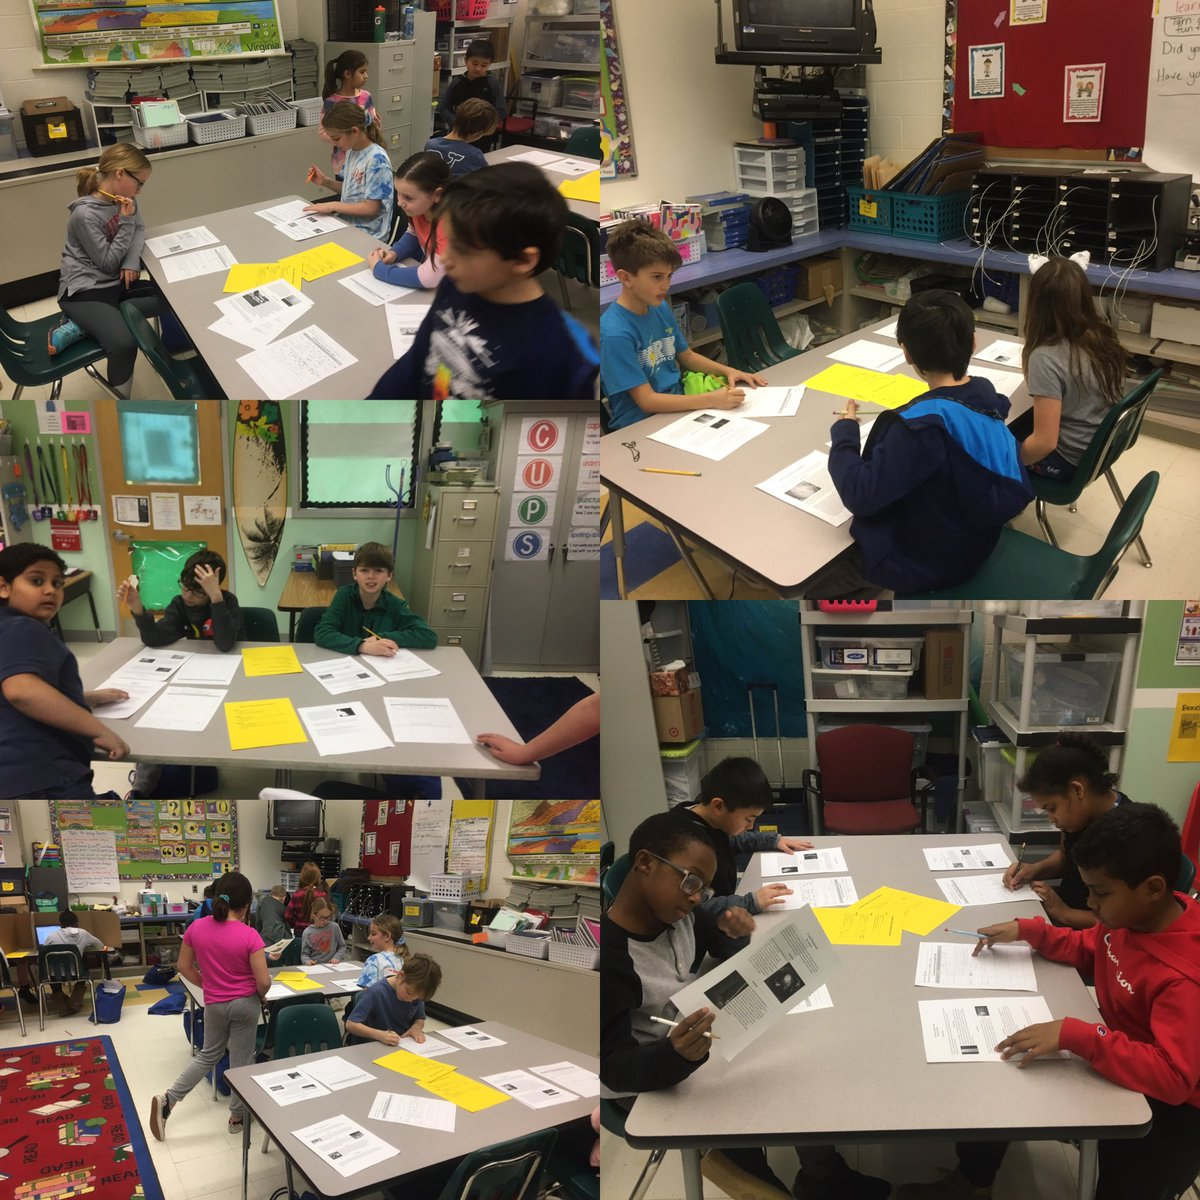 Fourth grade writers doing a Gallery Walk Celebration for research based pieces: correlating writing and science ⁦<a target='_blank' href='http://twitter.com/GlebeAPS'>@GlebeAPS</a>⁩ ⁦<a target='_blank' href='http://twitter.com/GlebeITC'>@GlebeITC</a>⁩ ⁦<a target='_blank' href='http://twitter.com/4thGlebe'>@4thGlebe</a>⁩ <a target='_blank' href='https://t.co/CxgnzdxwGs'>https://t.co/CxgnzdxwGs</a>